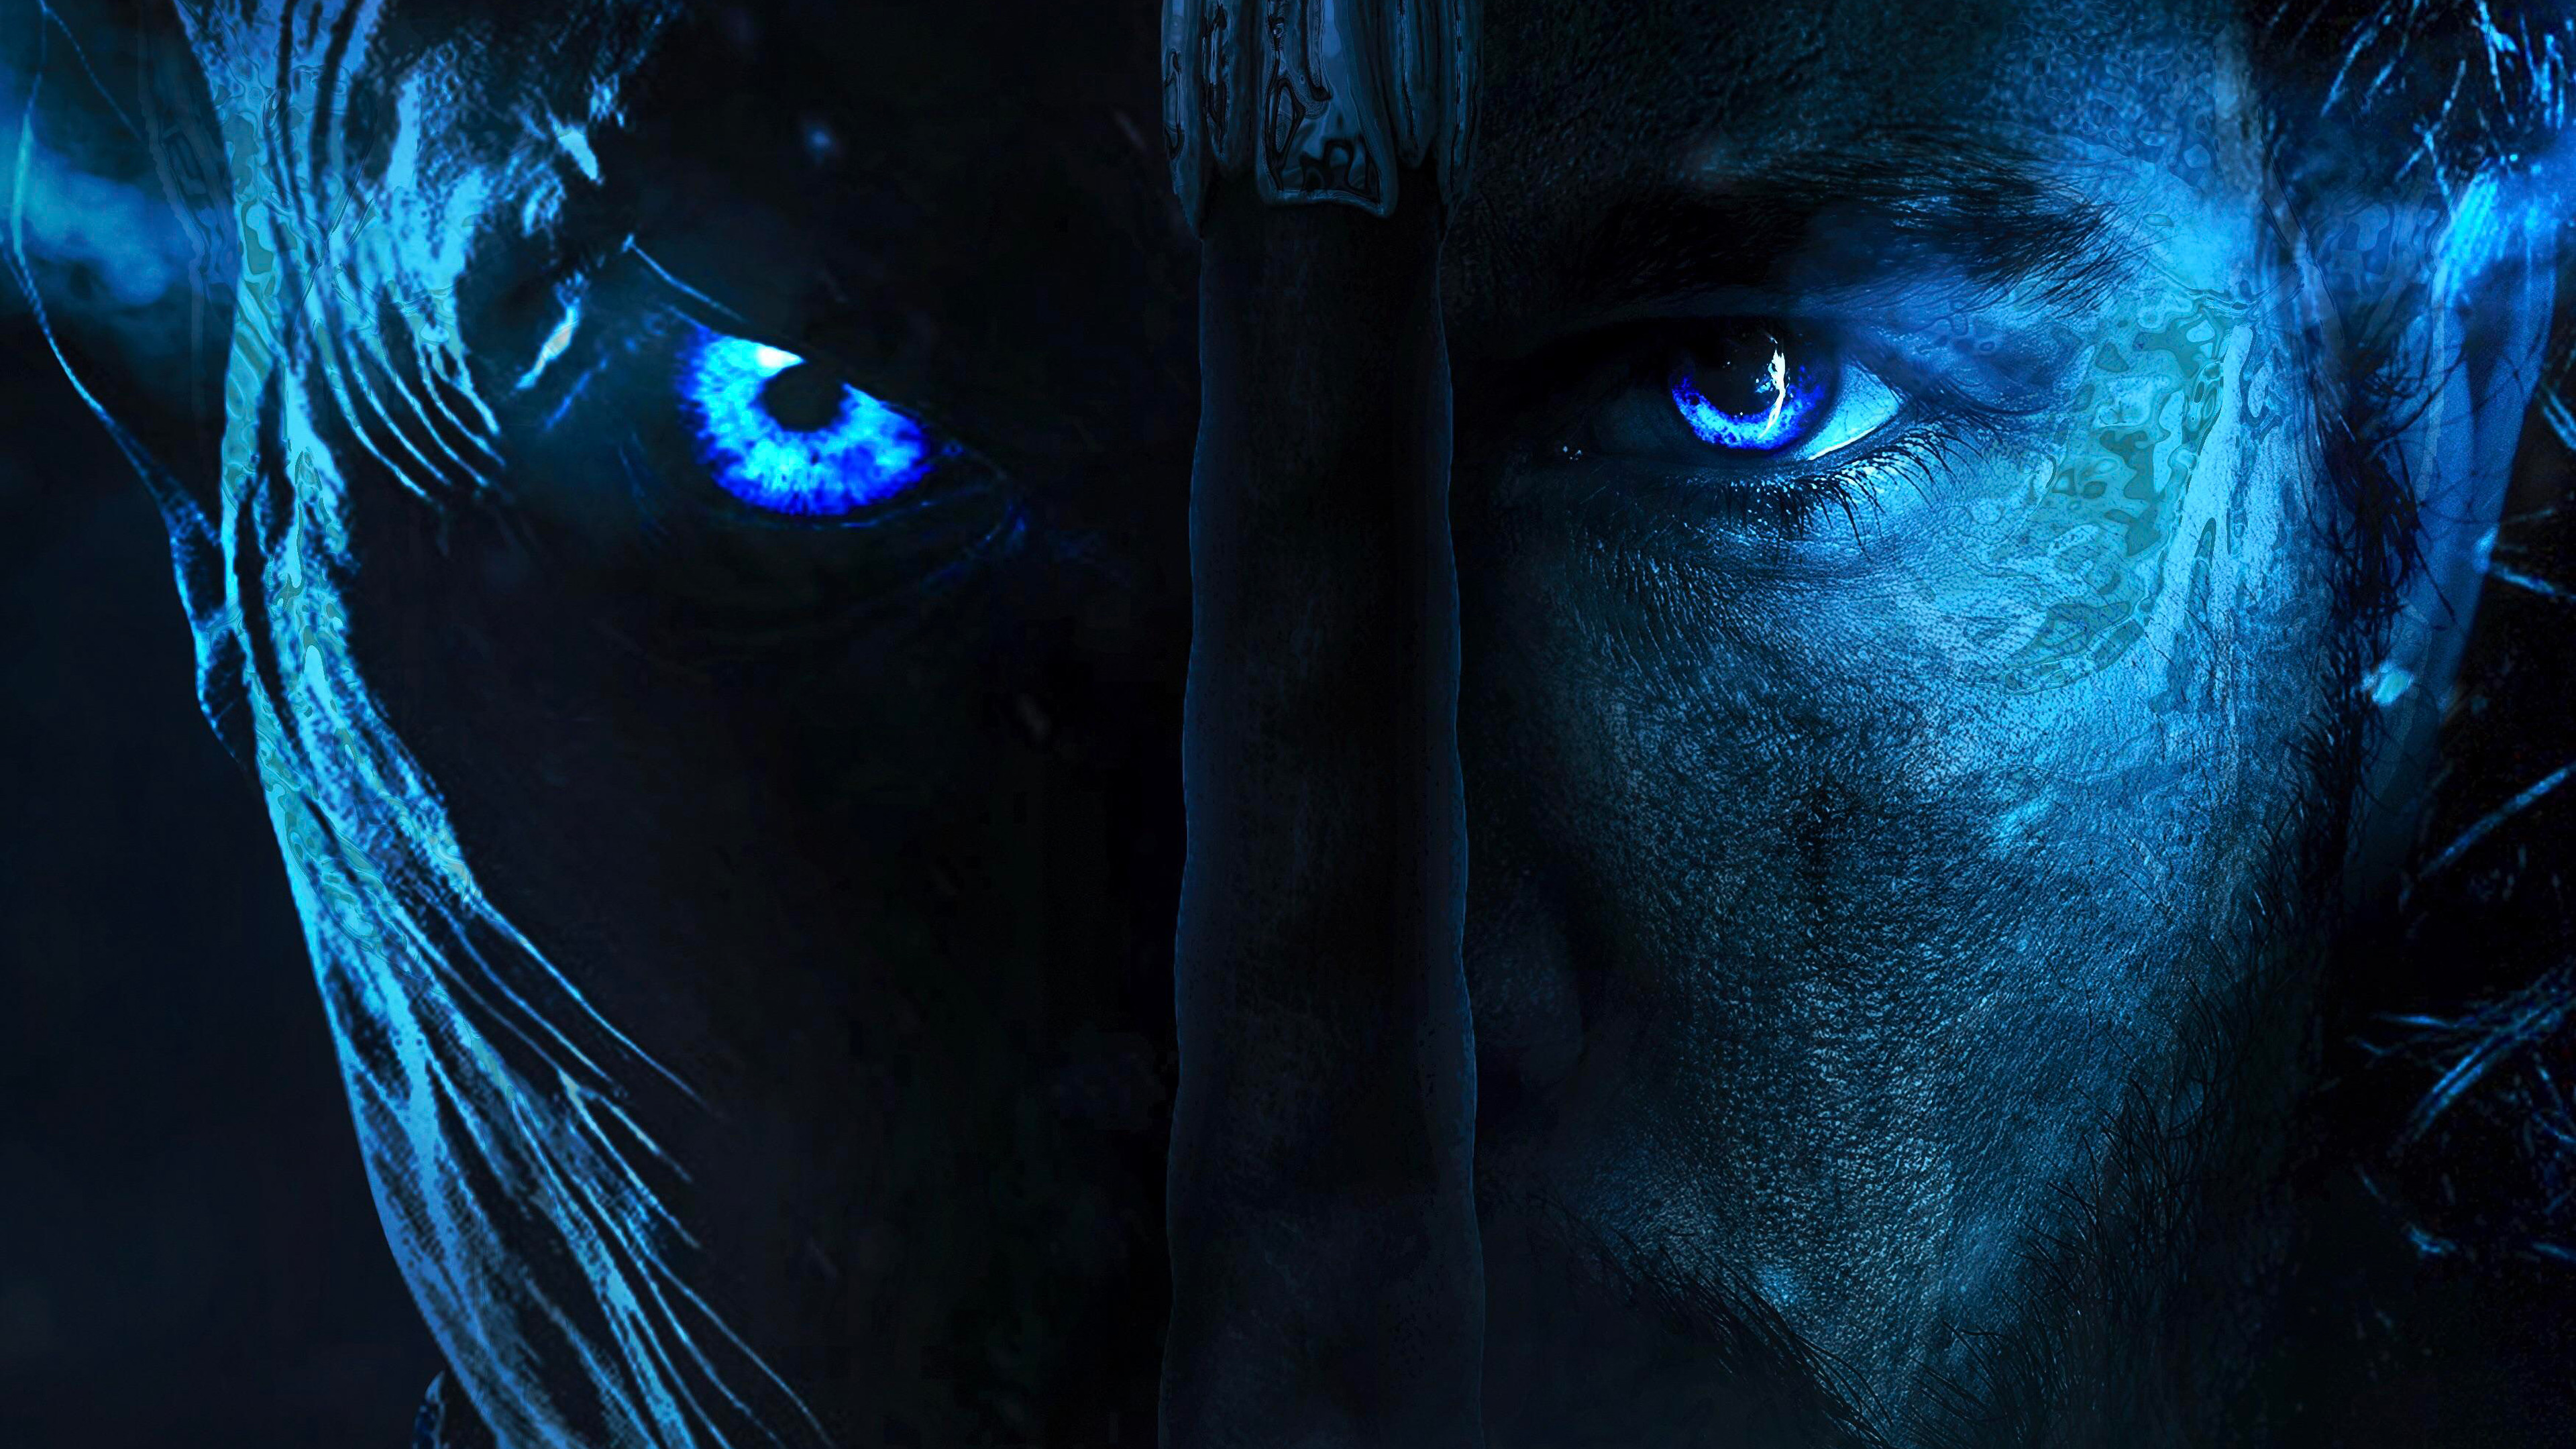 Night King And Jon Snow Game Of Thrones Wallpaper 4k Ultra